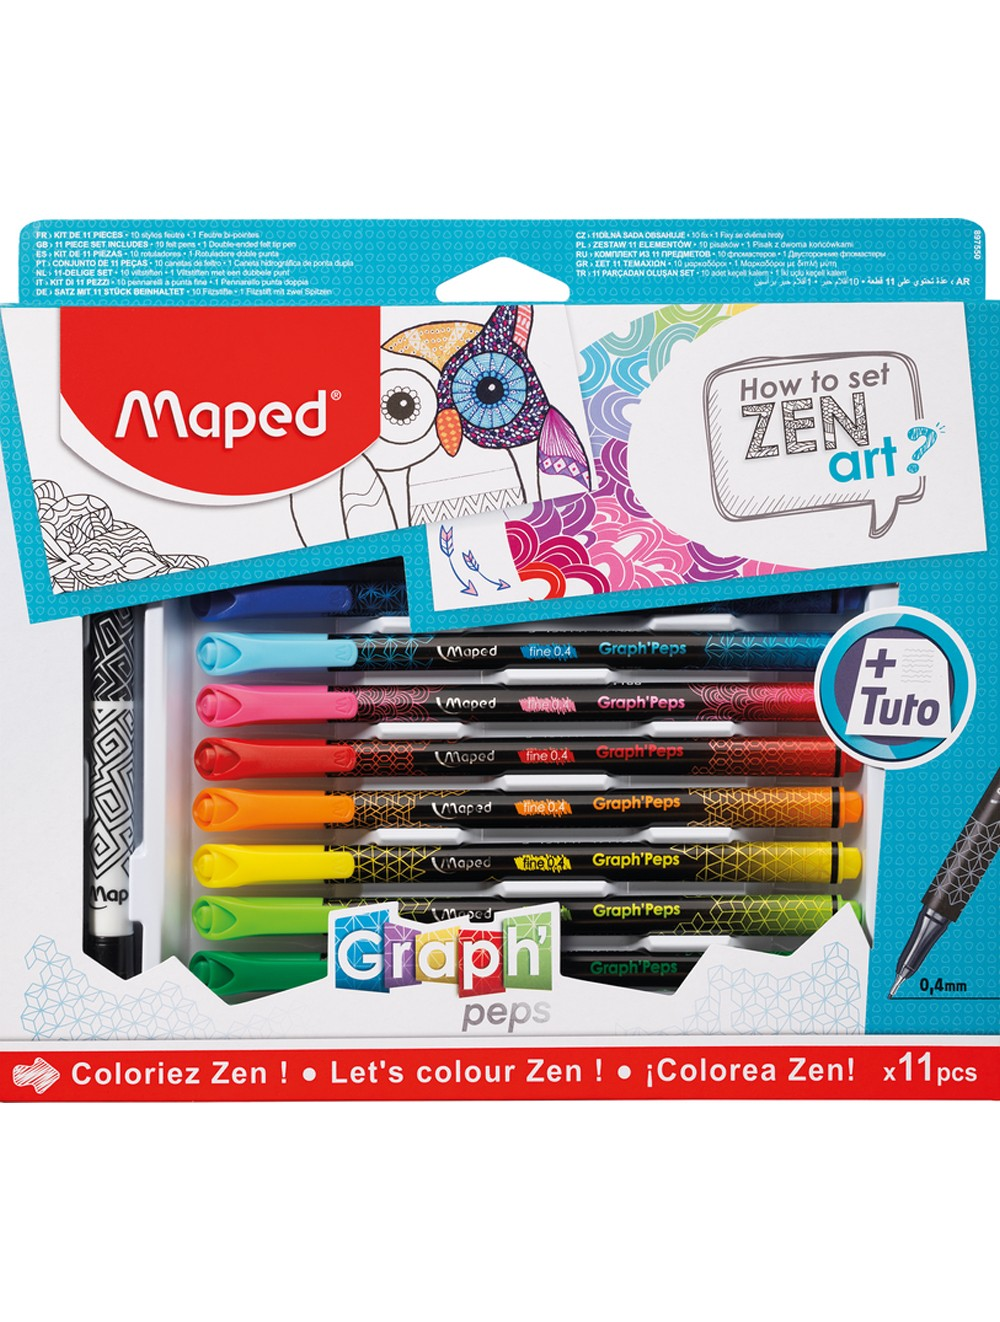 MAPED GRAPH'PEPS ZEN ART SET